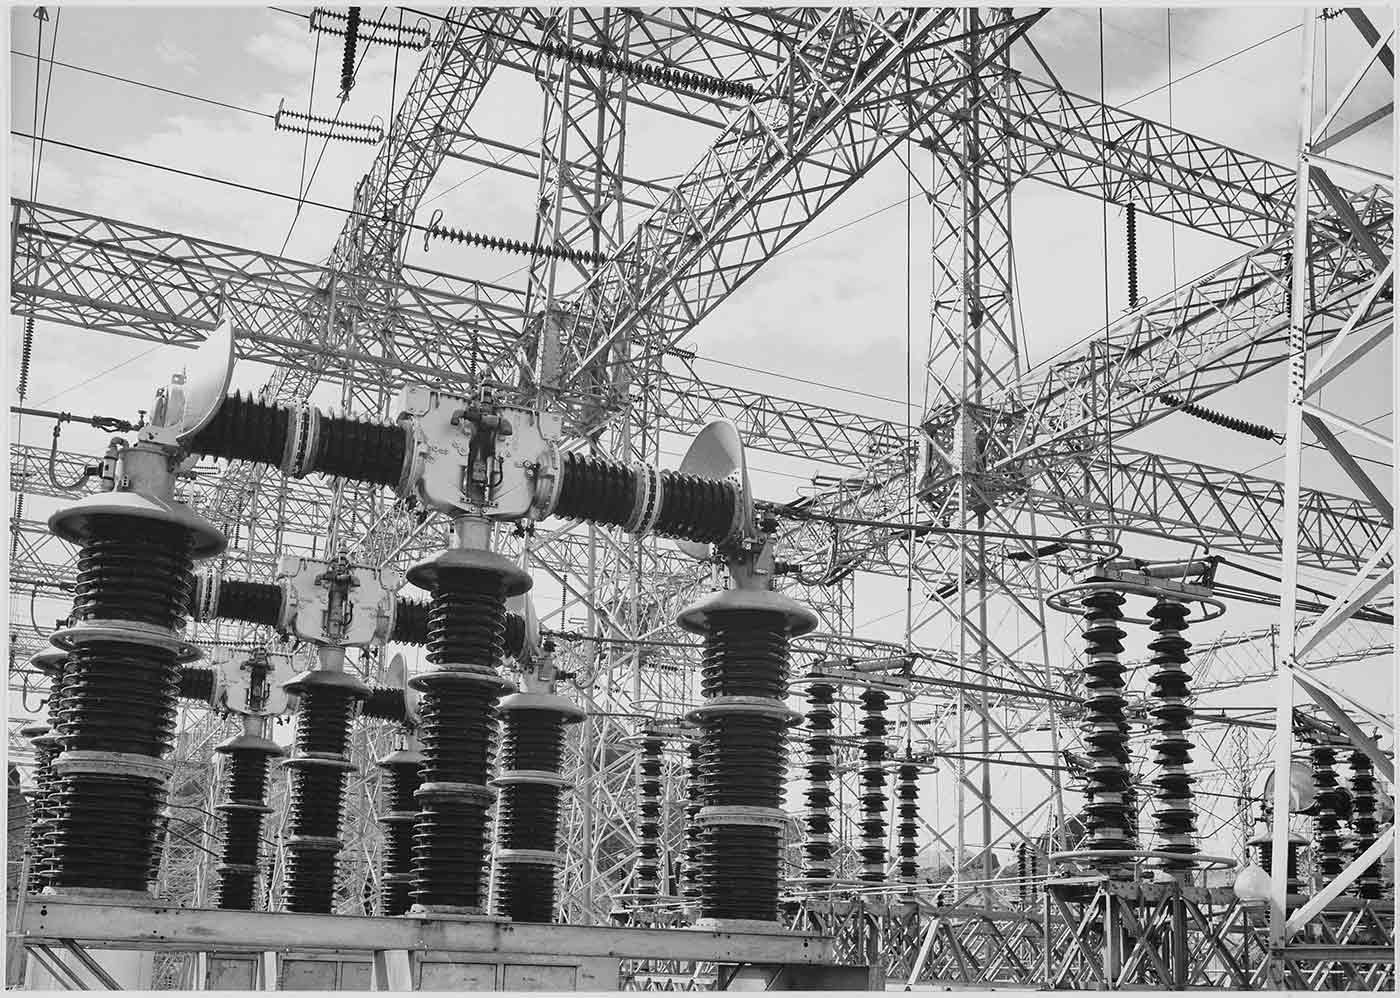 Ansel Adams' photograph of the Boulder Dam Power Units.